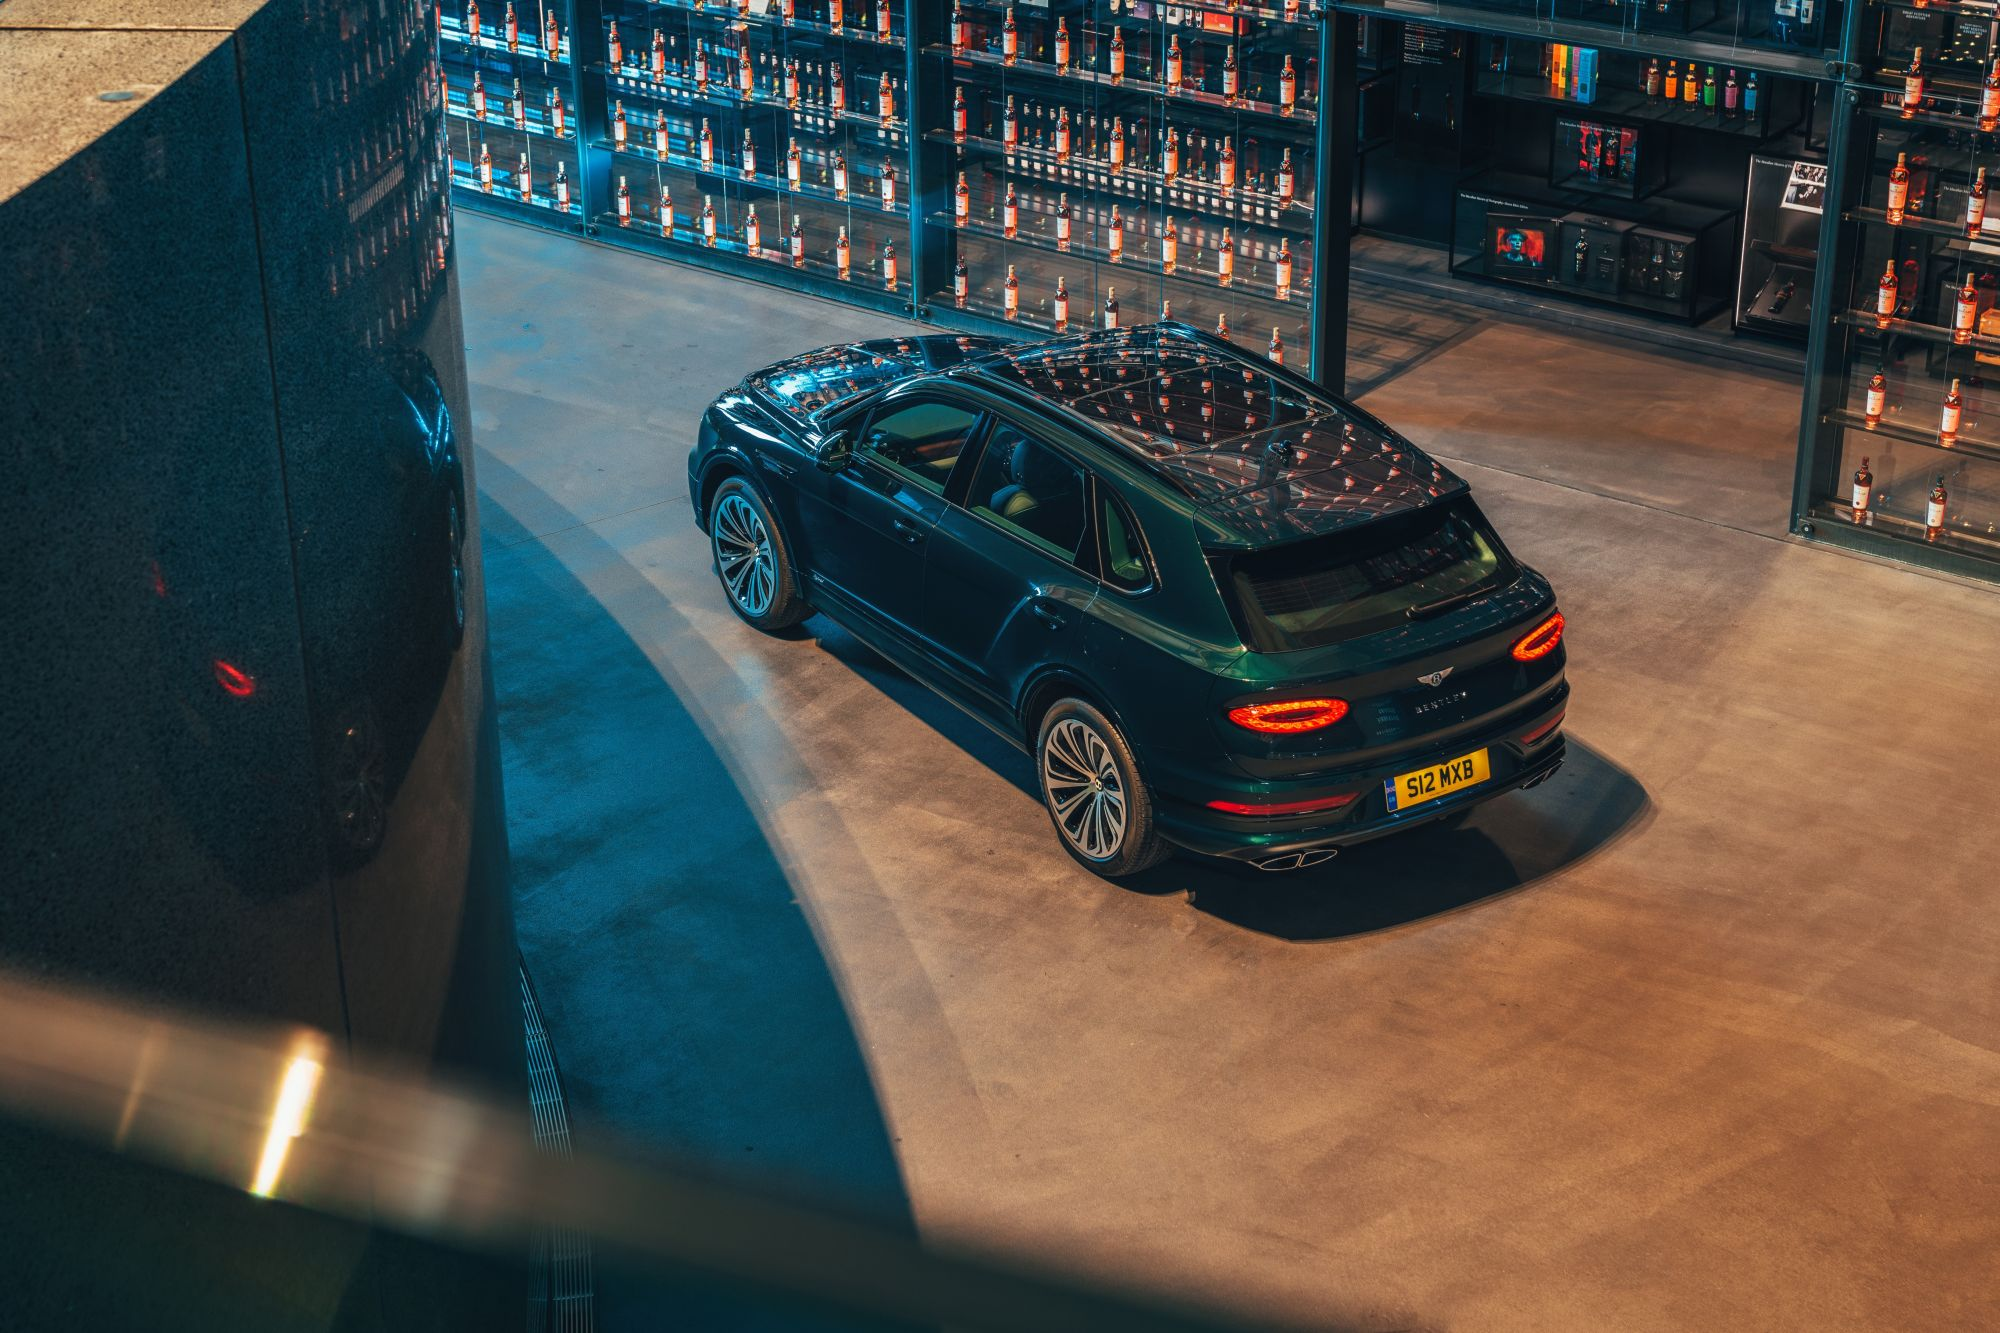 Bentley Motors is undergoing the biggest transformation in its 102-year history with the introduction of its Bentley 100 sustainability strategy.